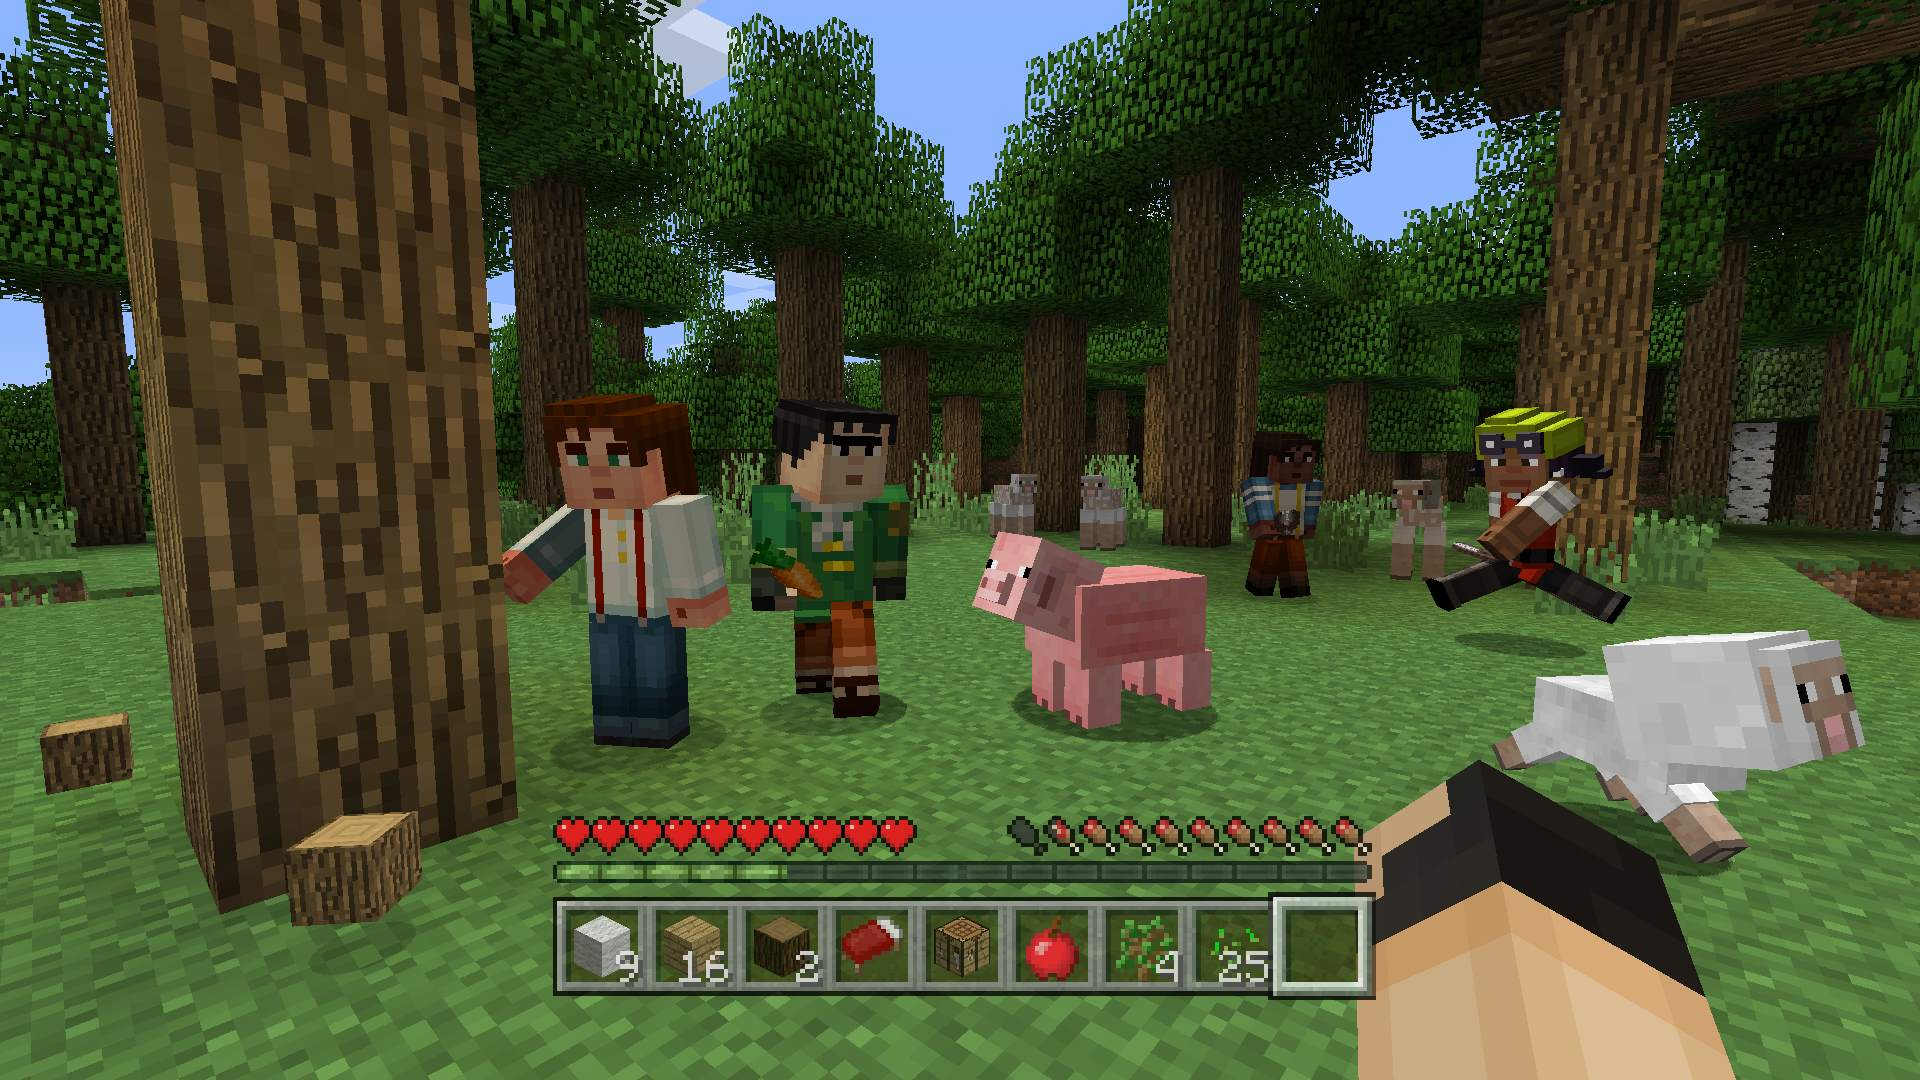 how to download skins for minecraft ps3